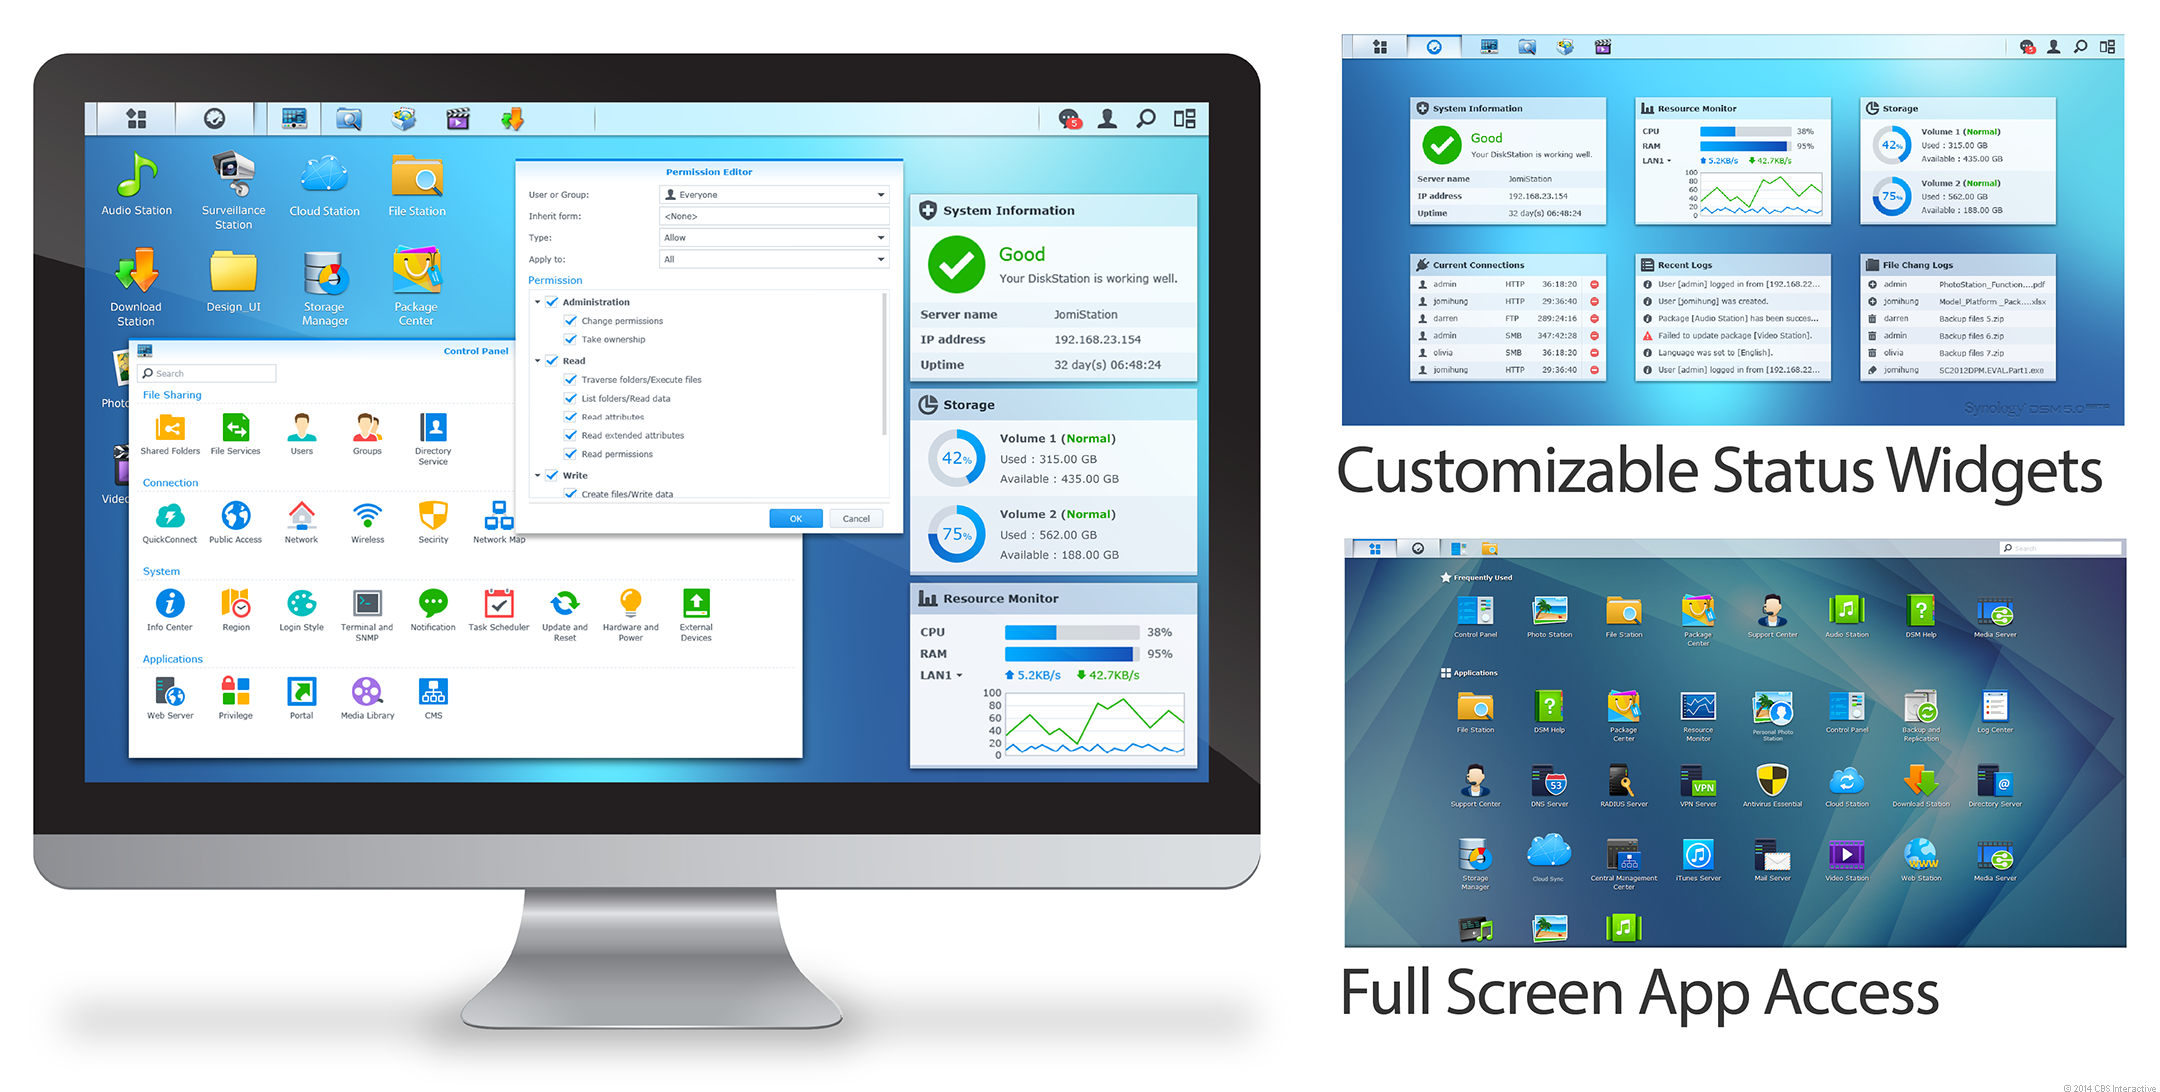 Version 5.0 of the DiskStation Manager operating system with a new, streamlined interface.